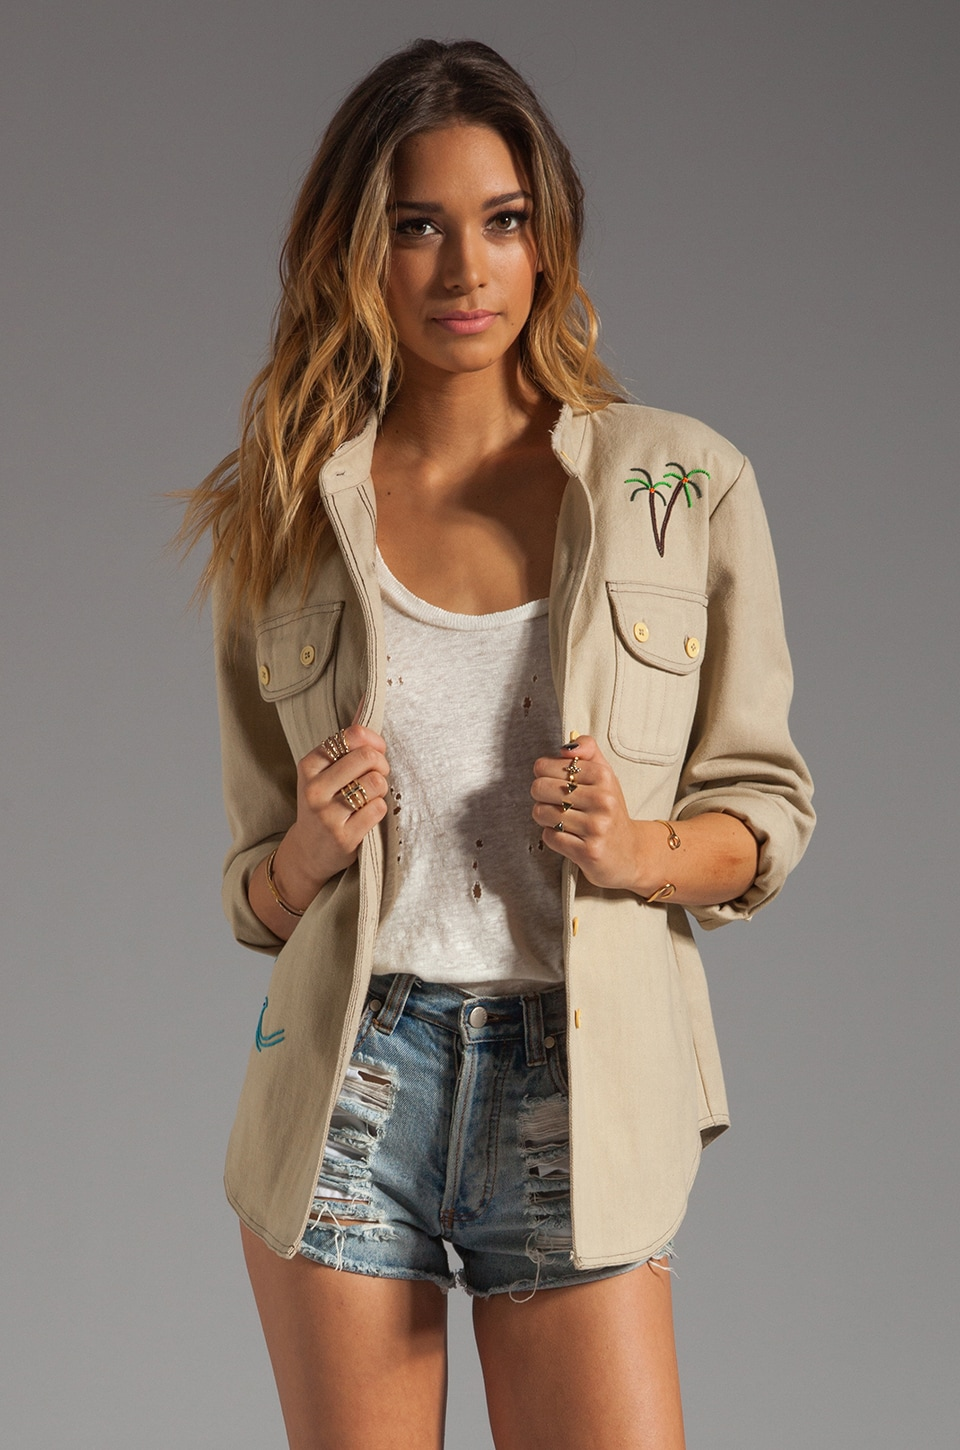 Mara Hoffman Beaded Jacket in Vanilla